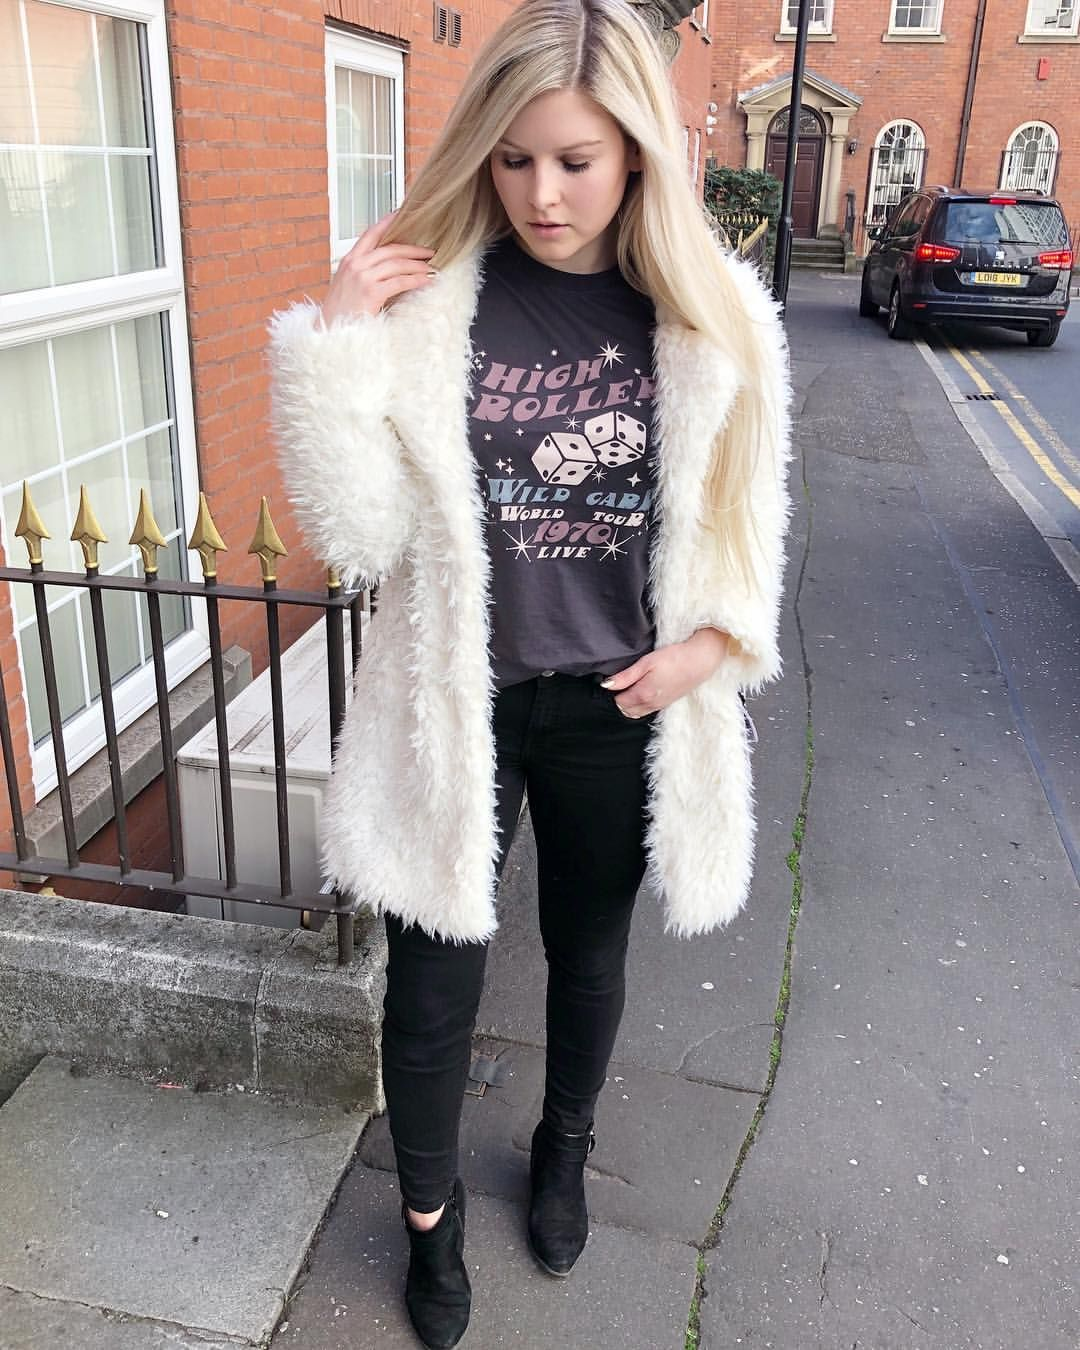 59fa23c43f31 Super fluffy white coat paired with this Joanie Clothing High Roller  t-shirt and black skinny jeans. Oversized faux fur coats are an autumn  style staple!